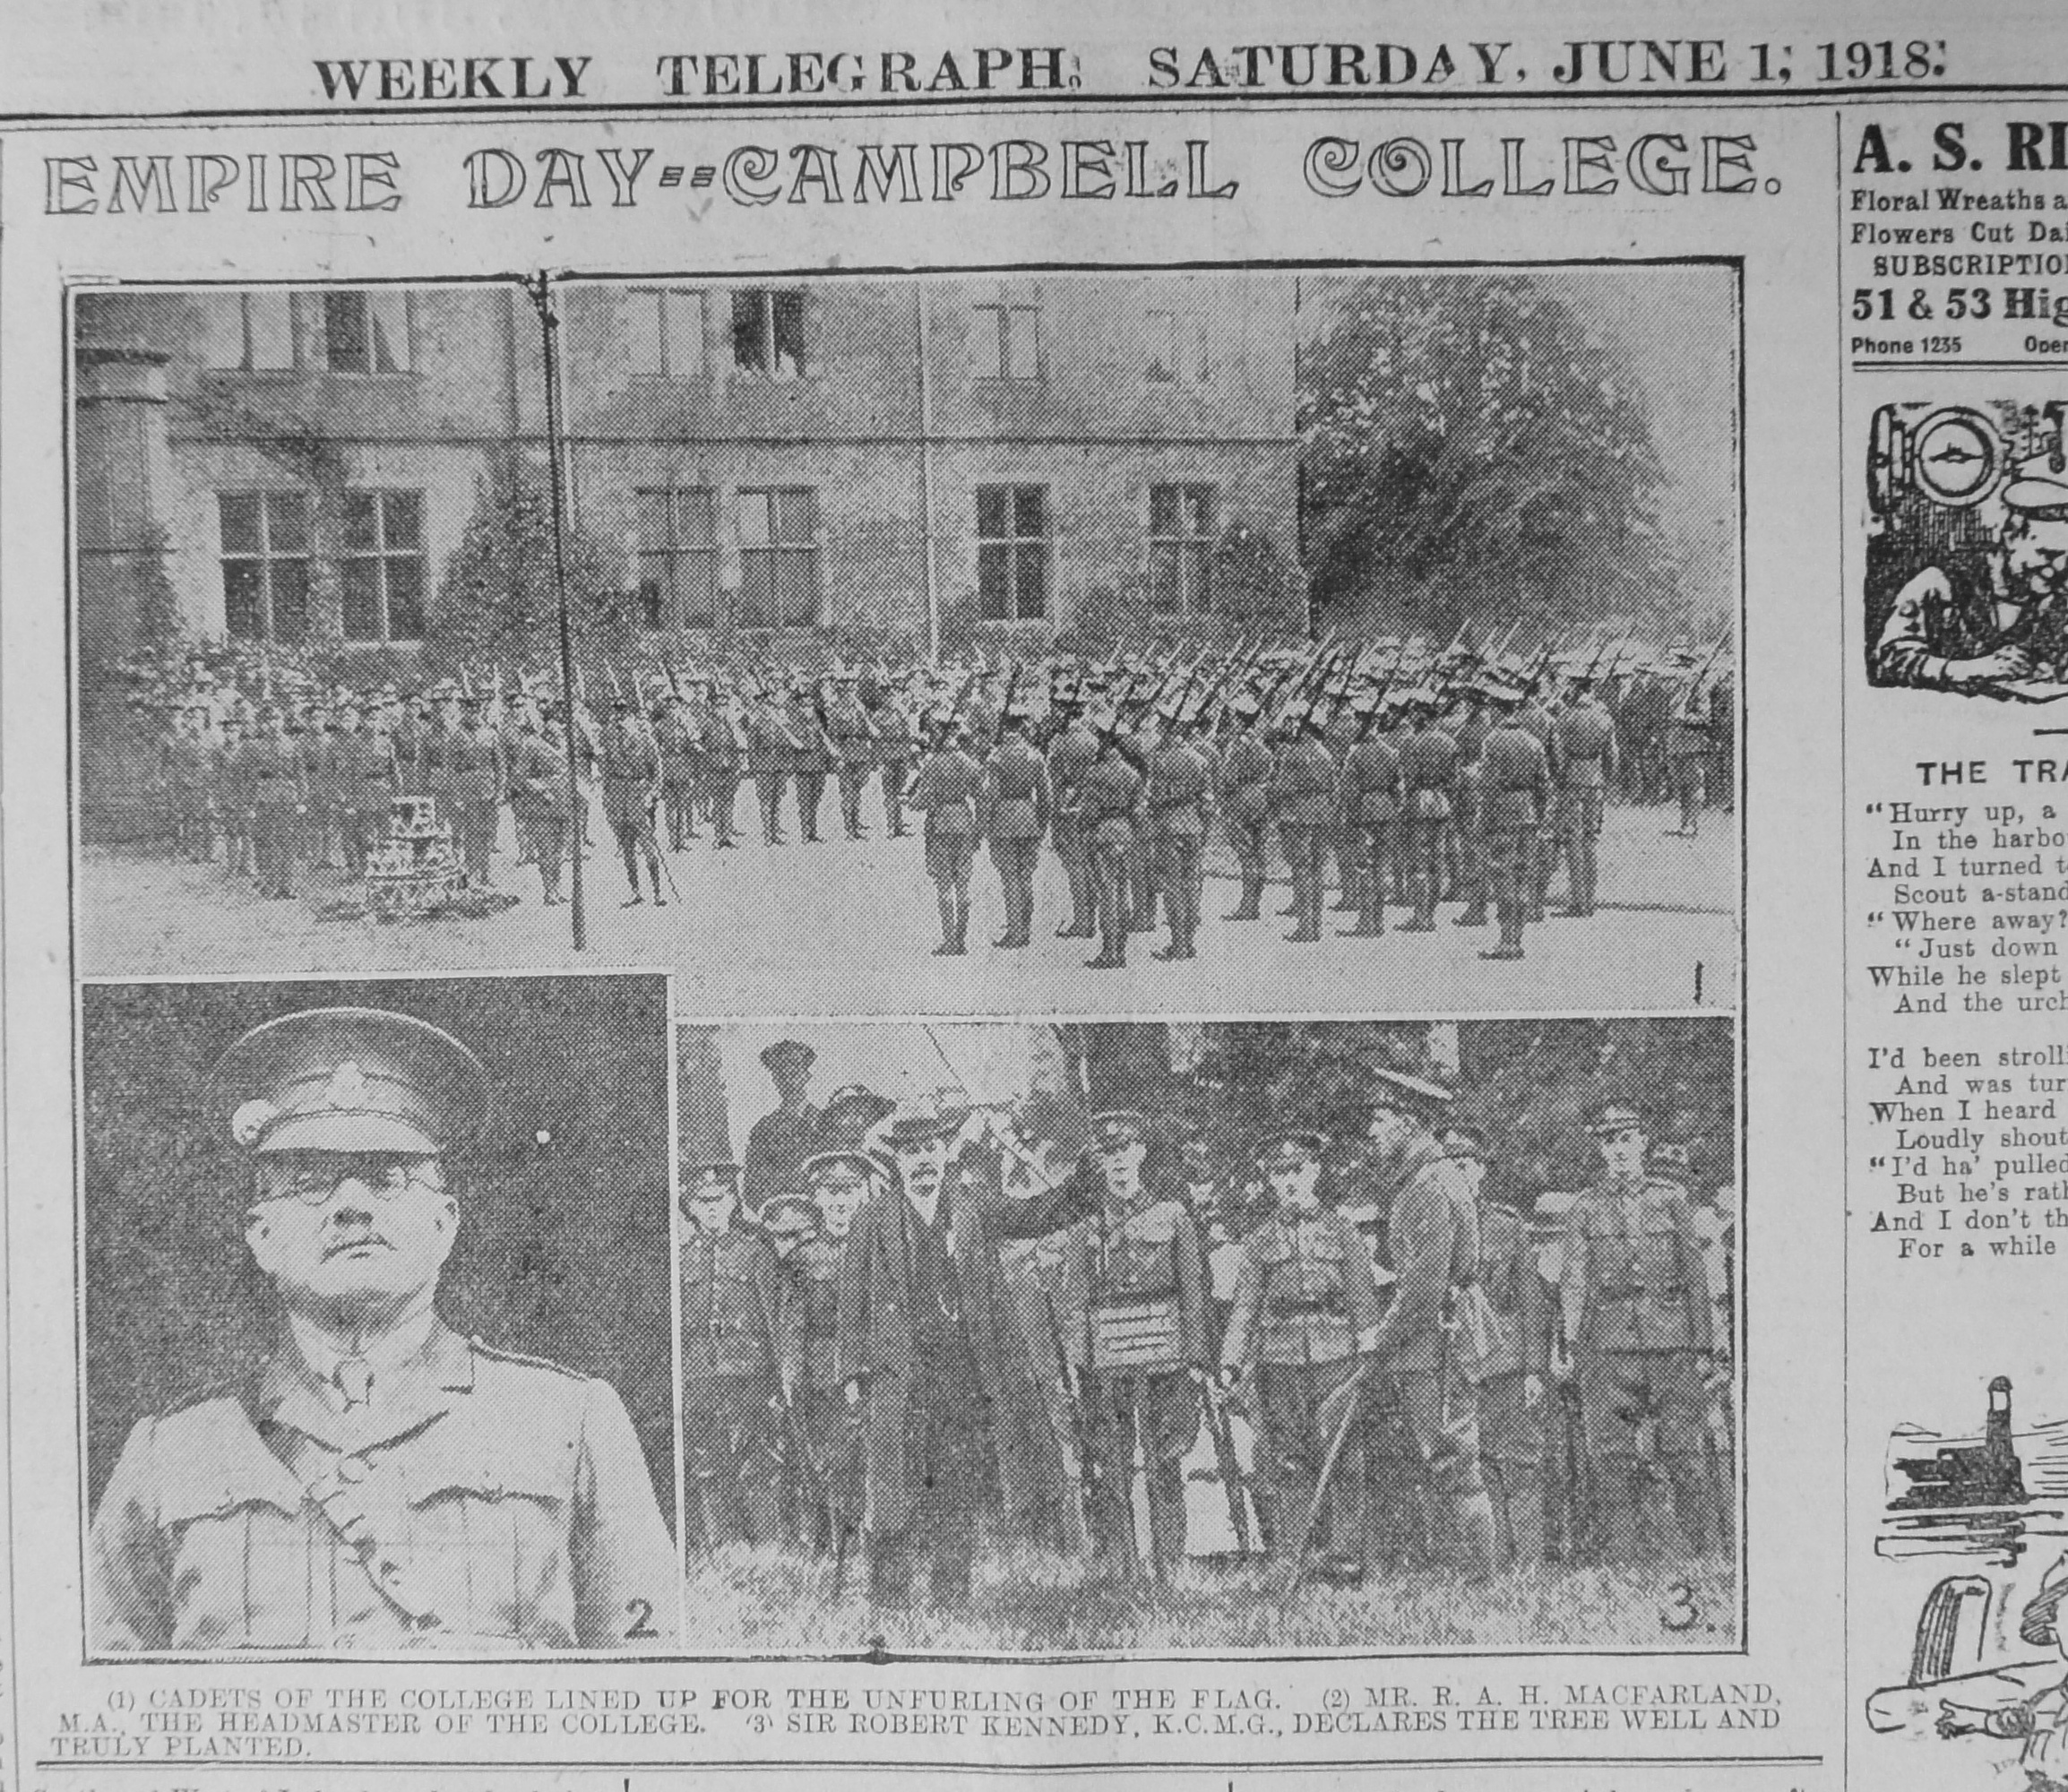 Empire Day 1918 - Campbell College (LT 01-06-1918)